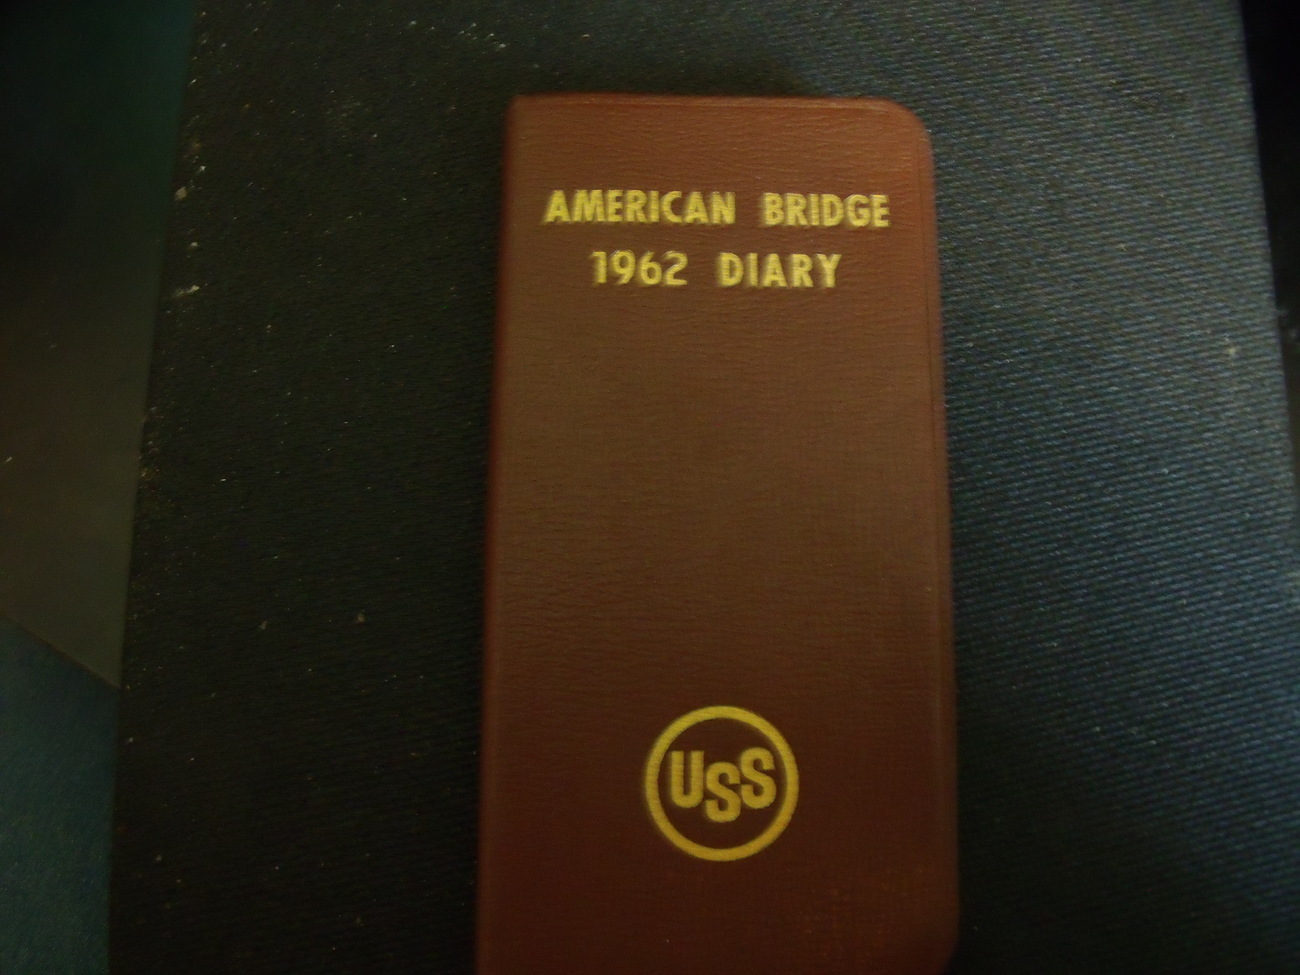 Original 1962 American Bridge Diary issued by US Steel